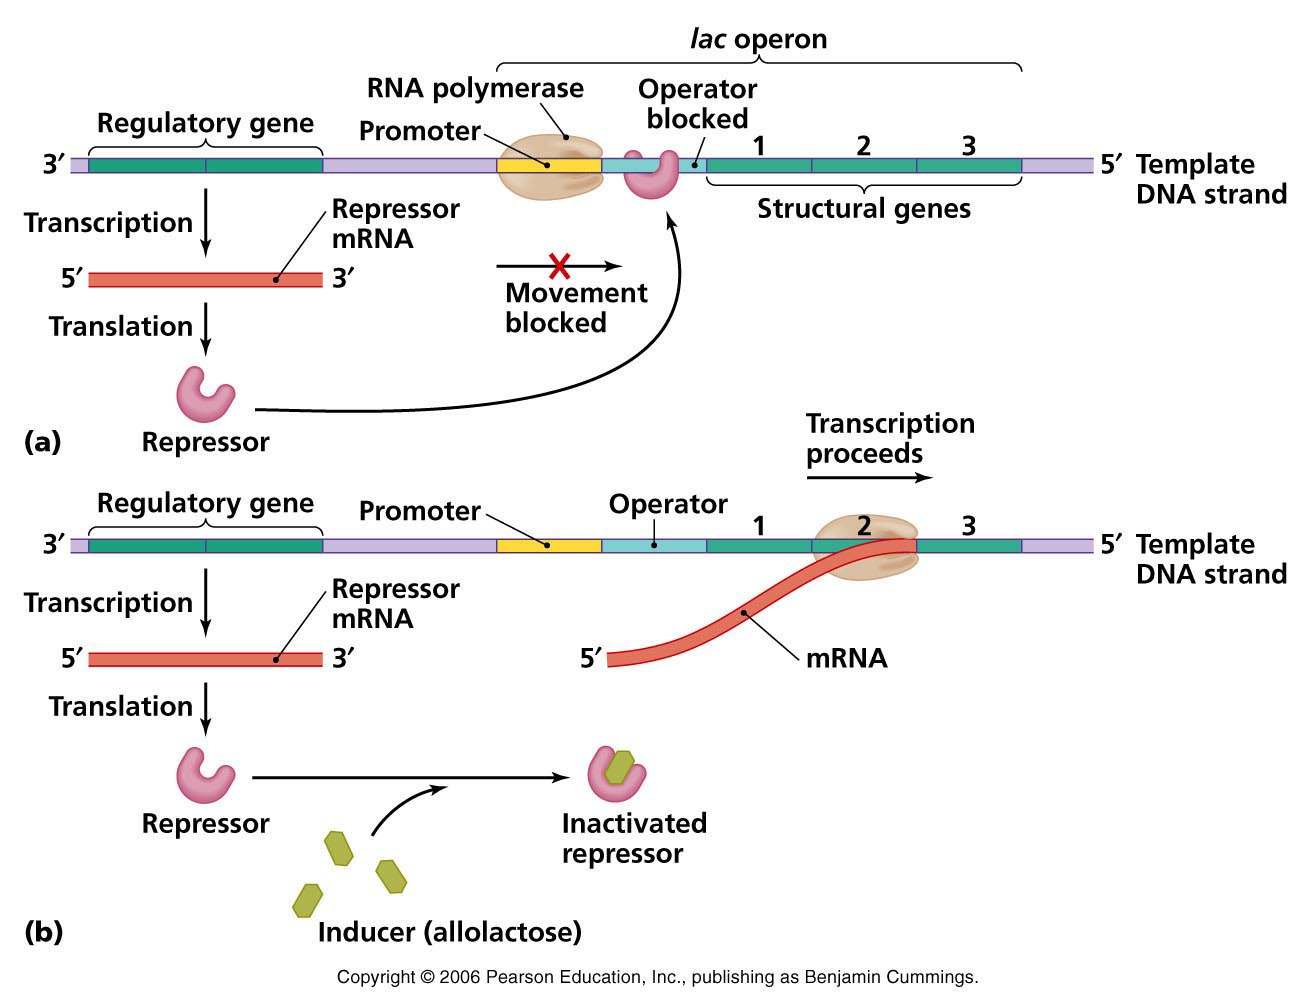 Inducers and the Induction of Lac Operon